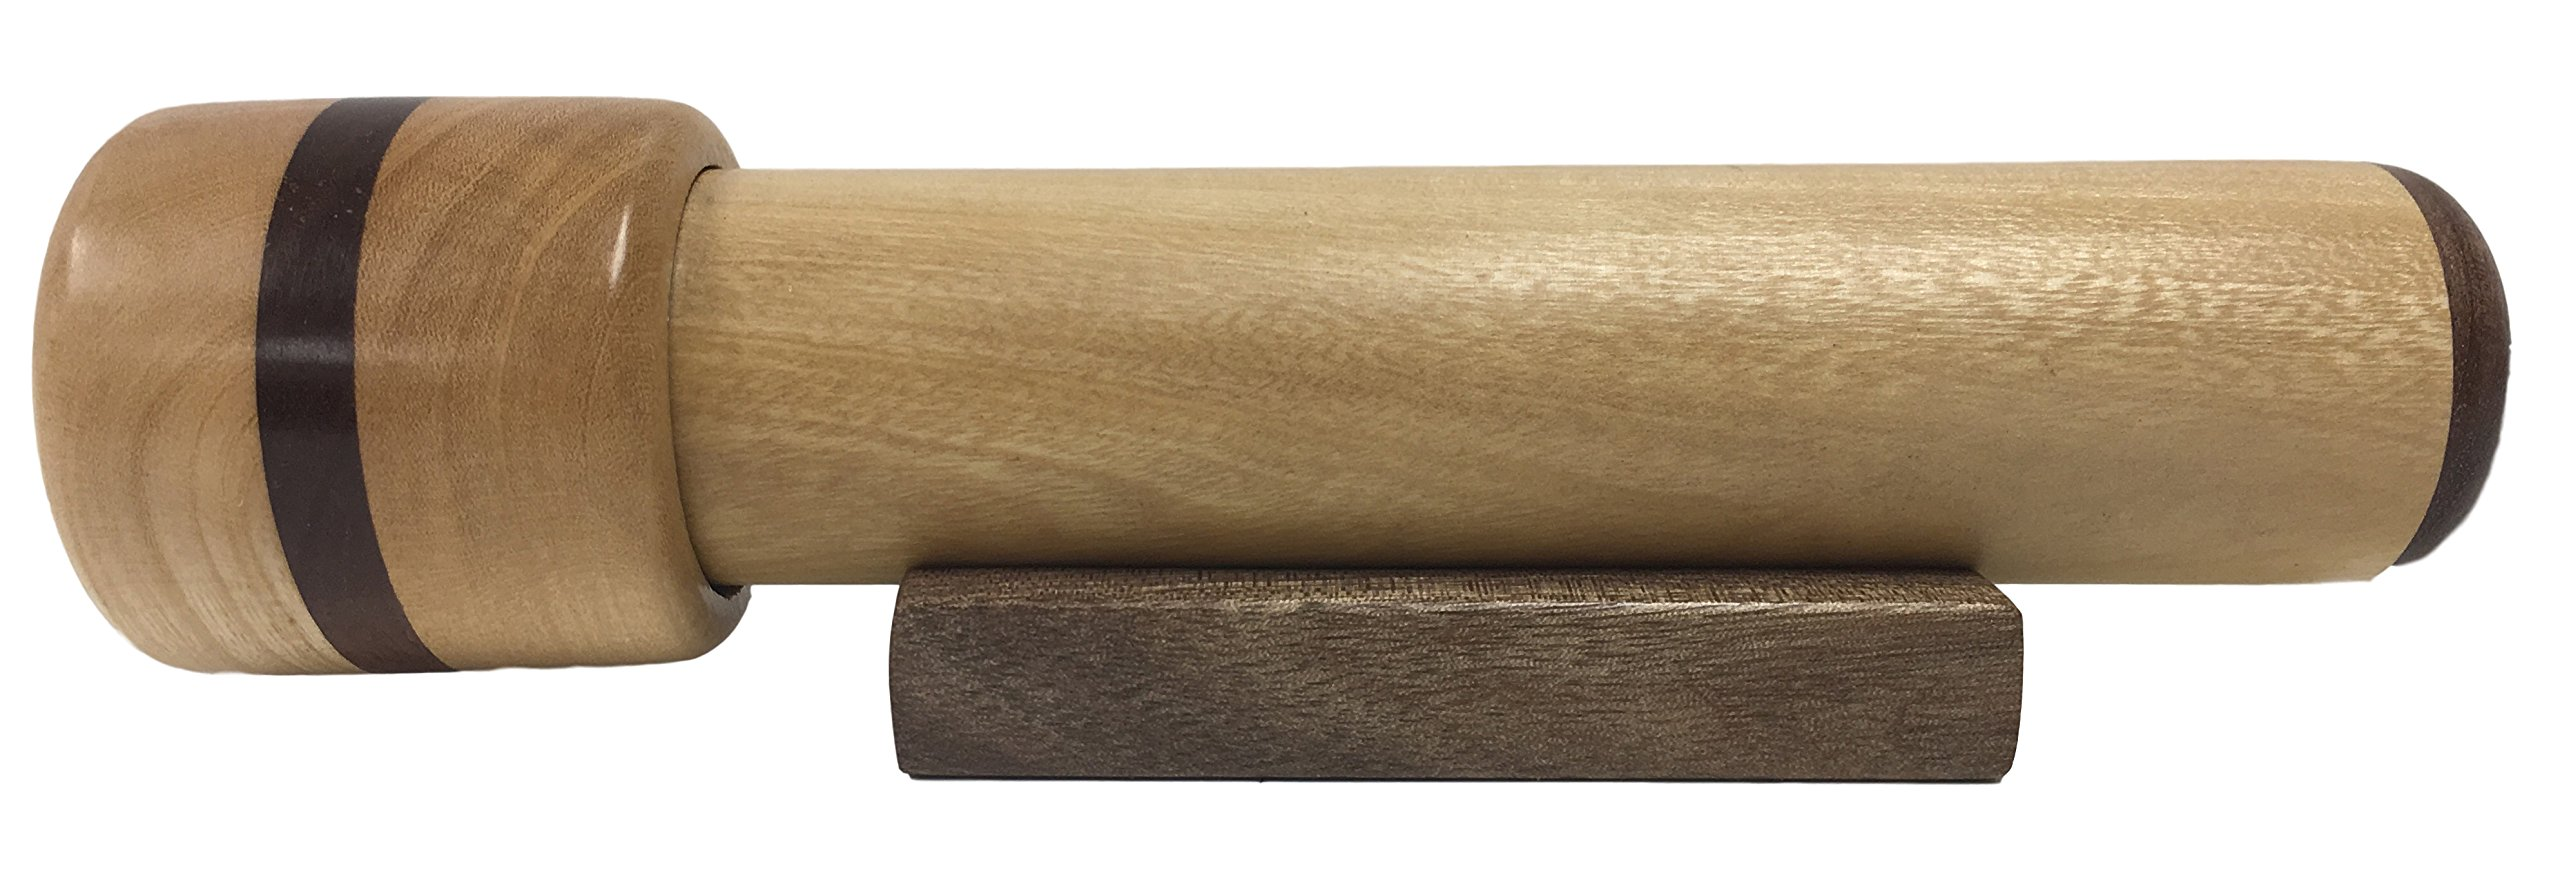 N & J Kaleidoscope in Solid Jalneem Wood with Walnut Accents, 7 3/4 Inches, Beaded Turning Chamber, Gift Idea!